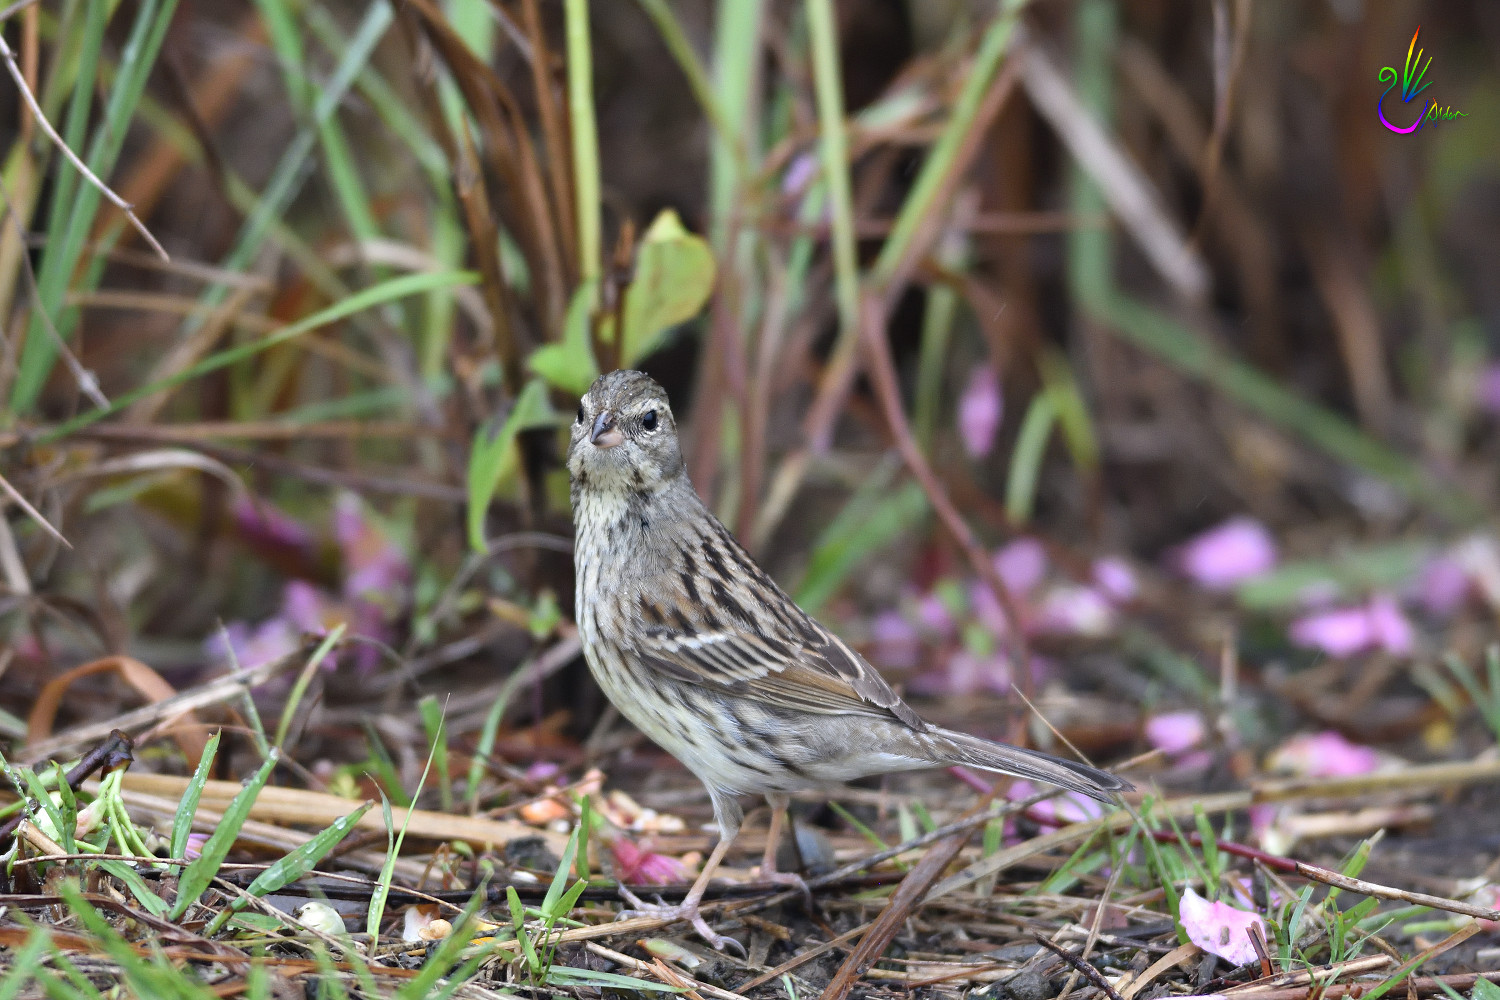 Black-faced_Bunting_7664